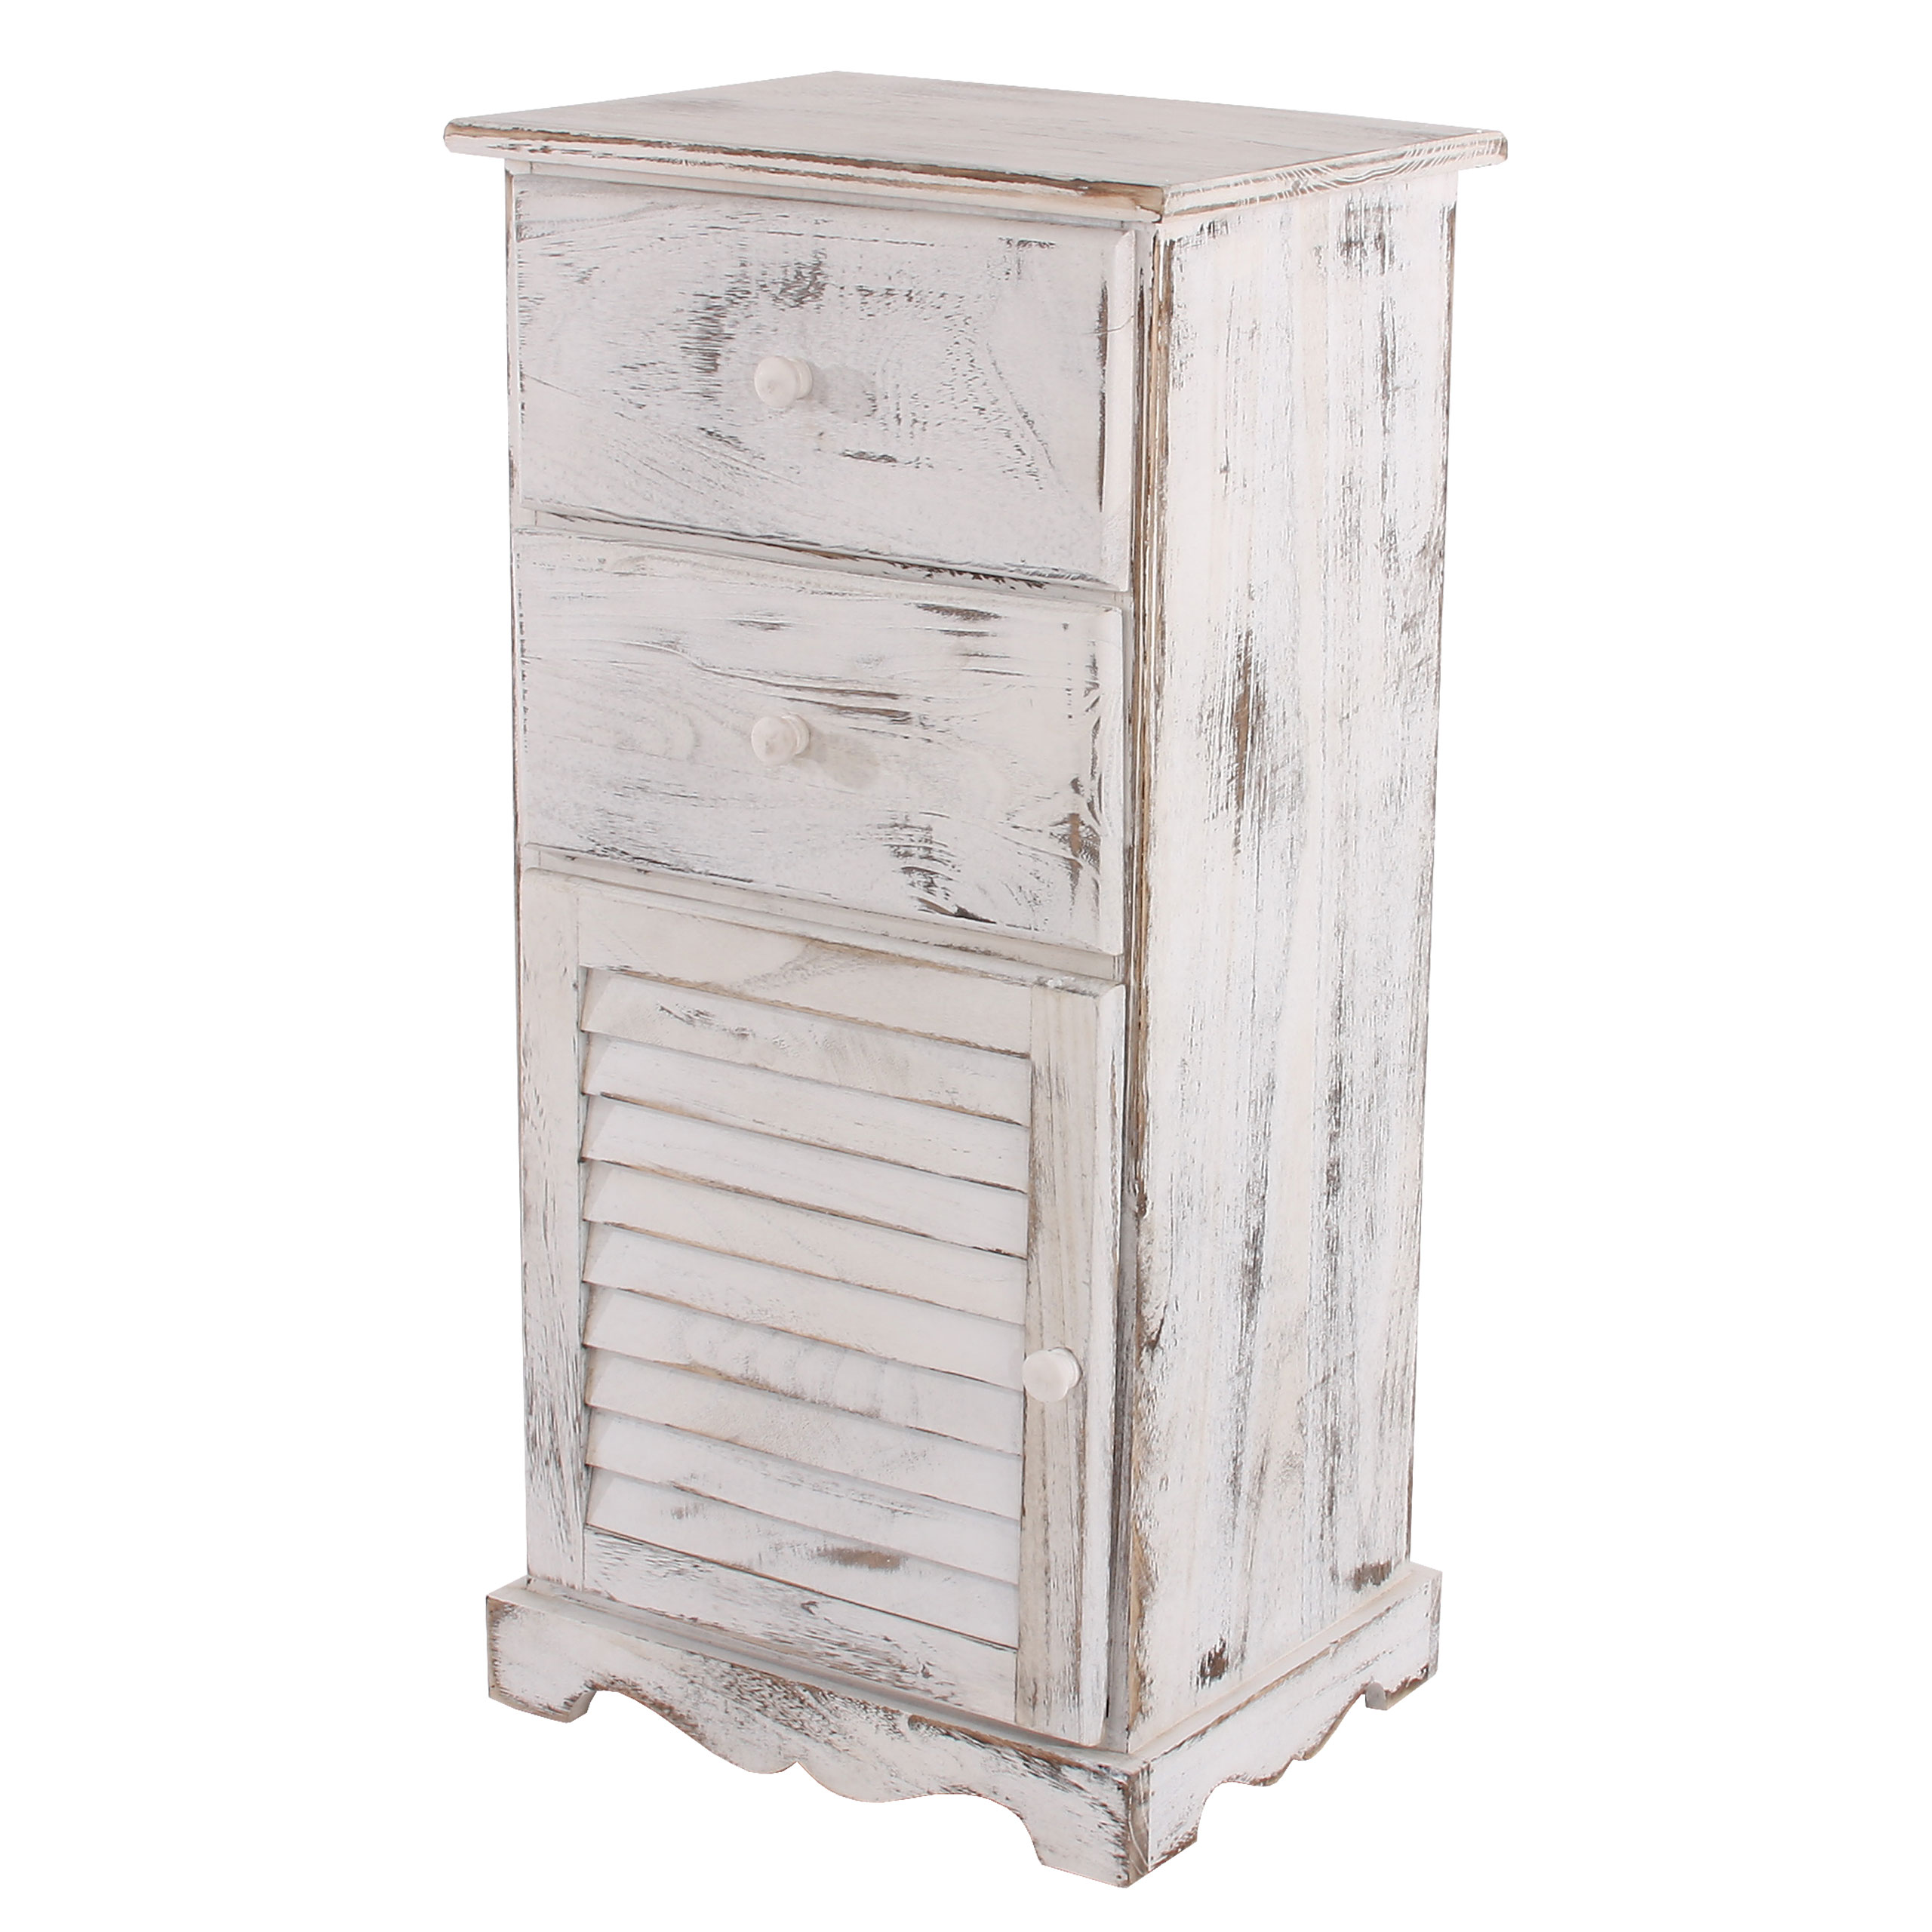 kommode schrank 81x40x32cm shabby look vintage braun wei ebay. Black Bedroom Furniture Sets. Home Design Ideas